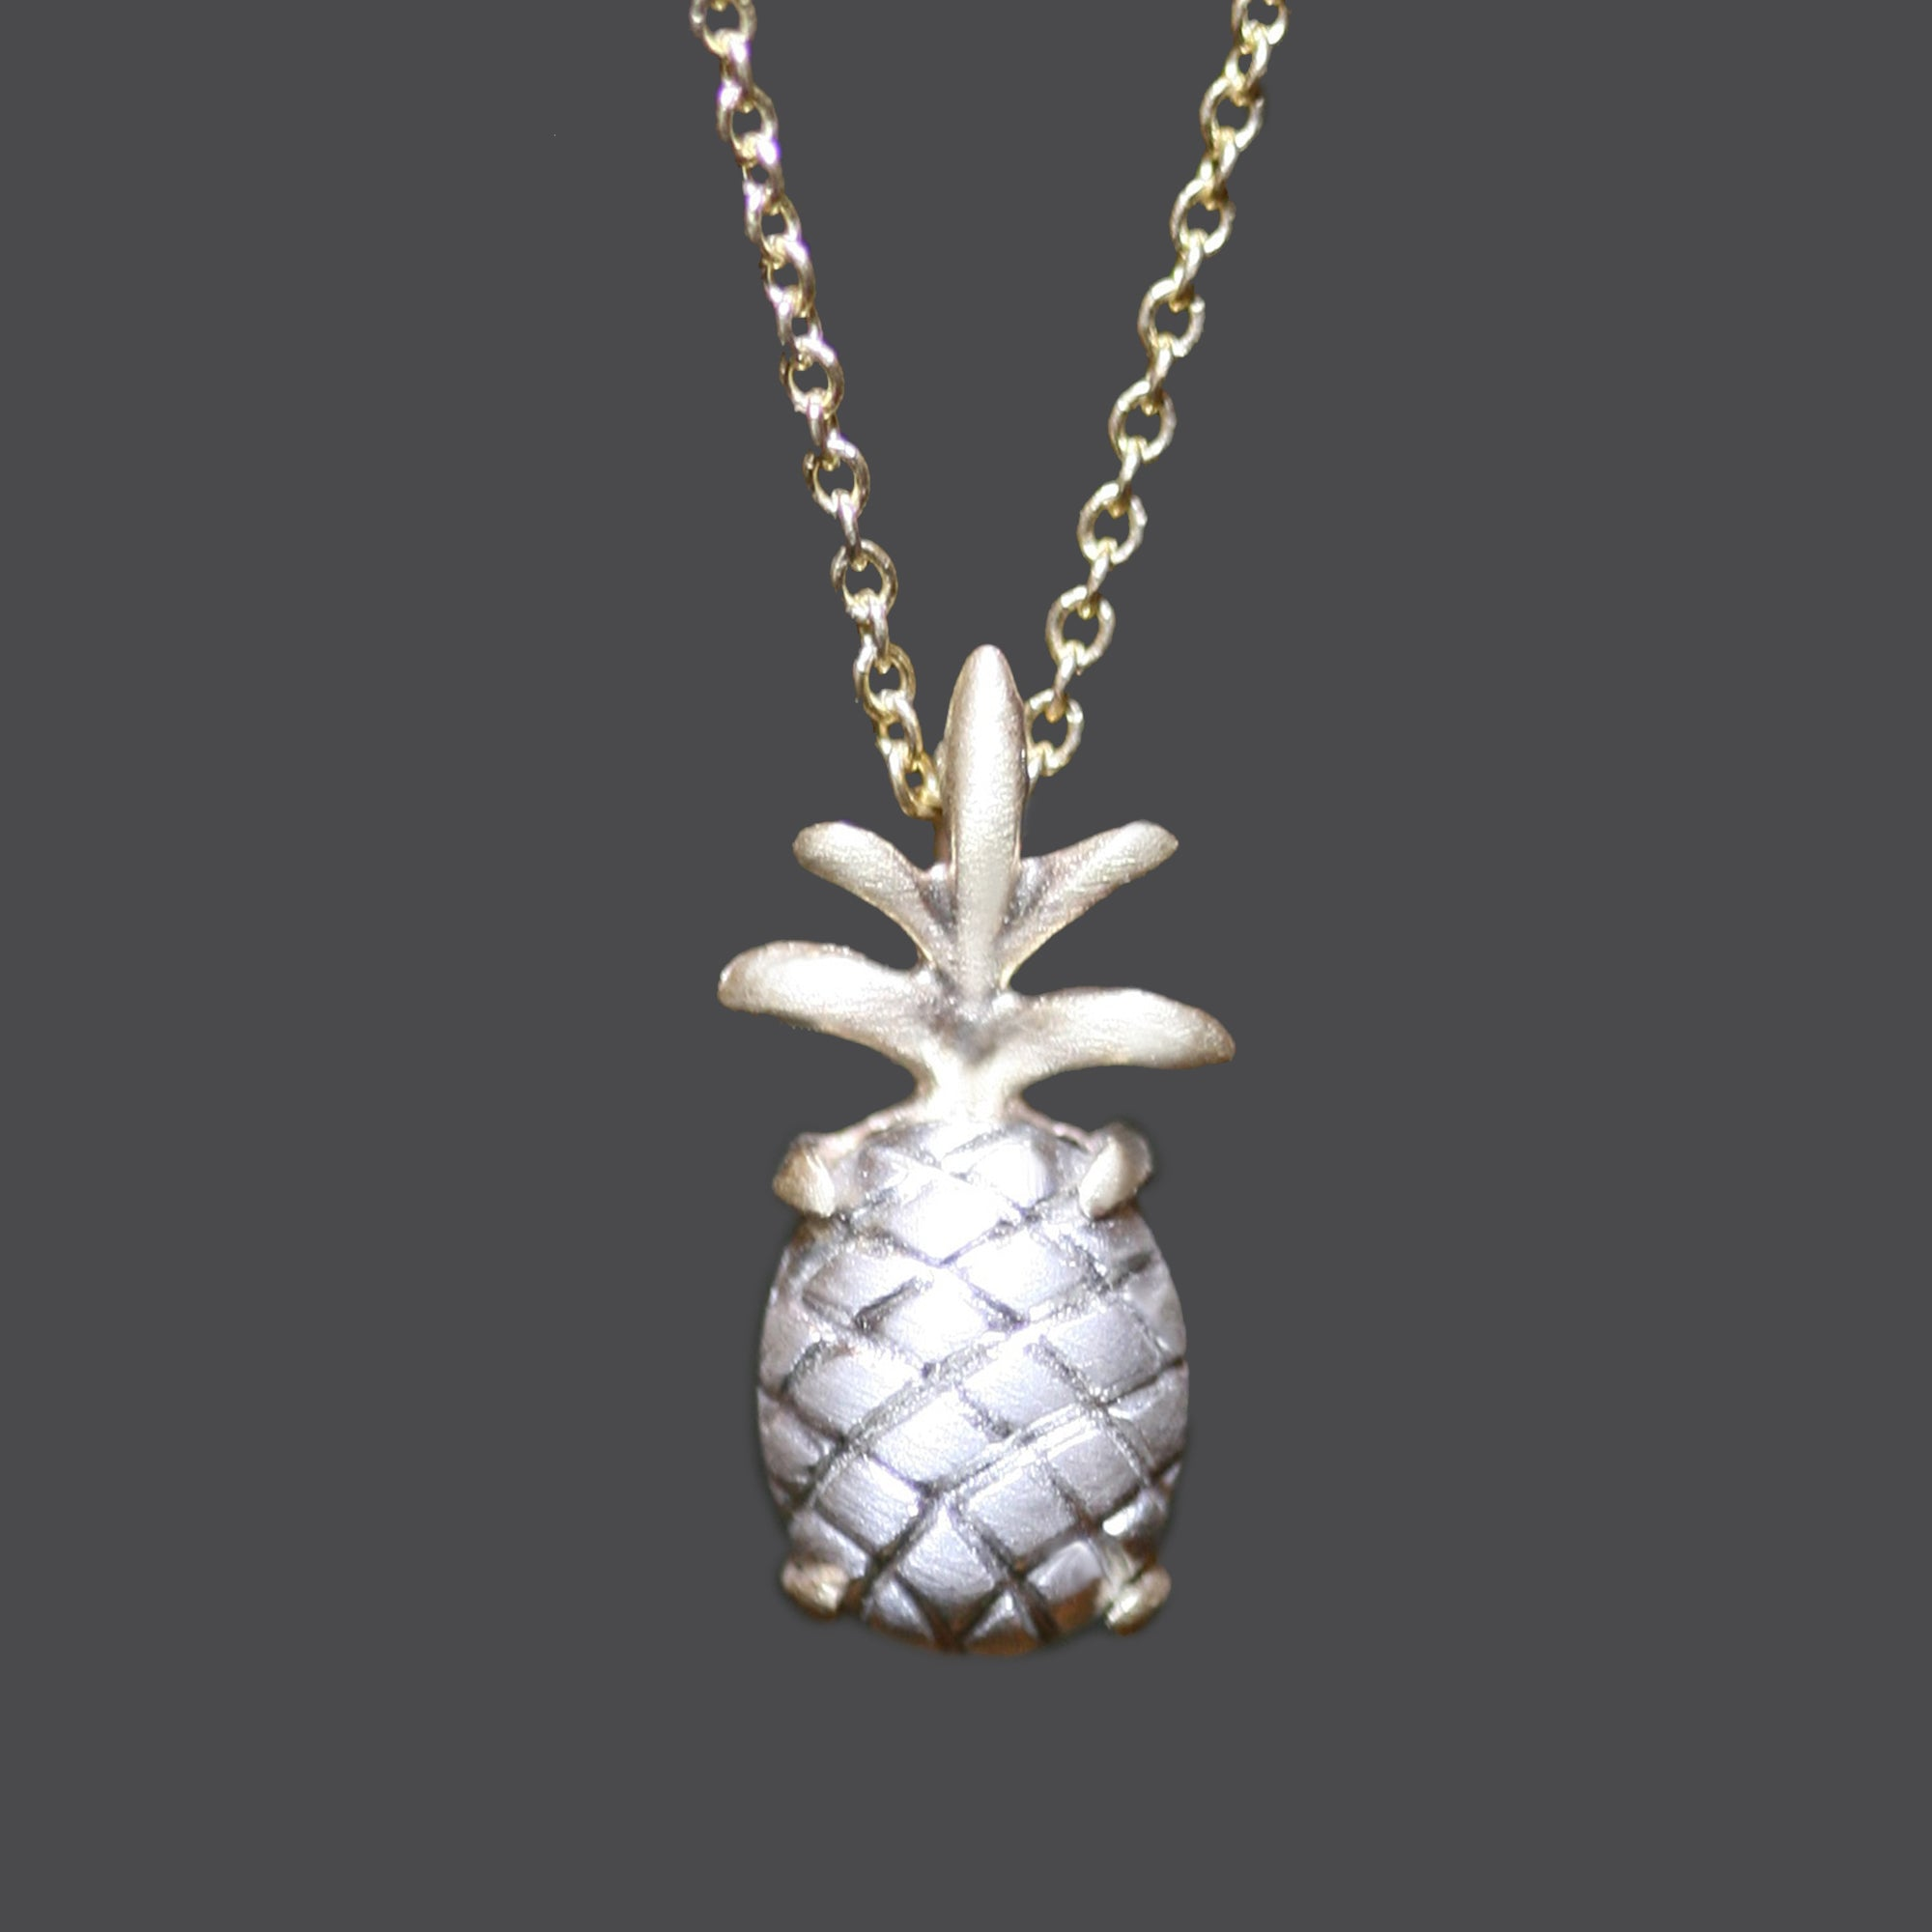 pineapple co goldpineapplenecklace and gold pearls product necklace pineapples